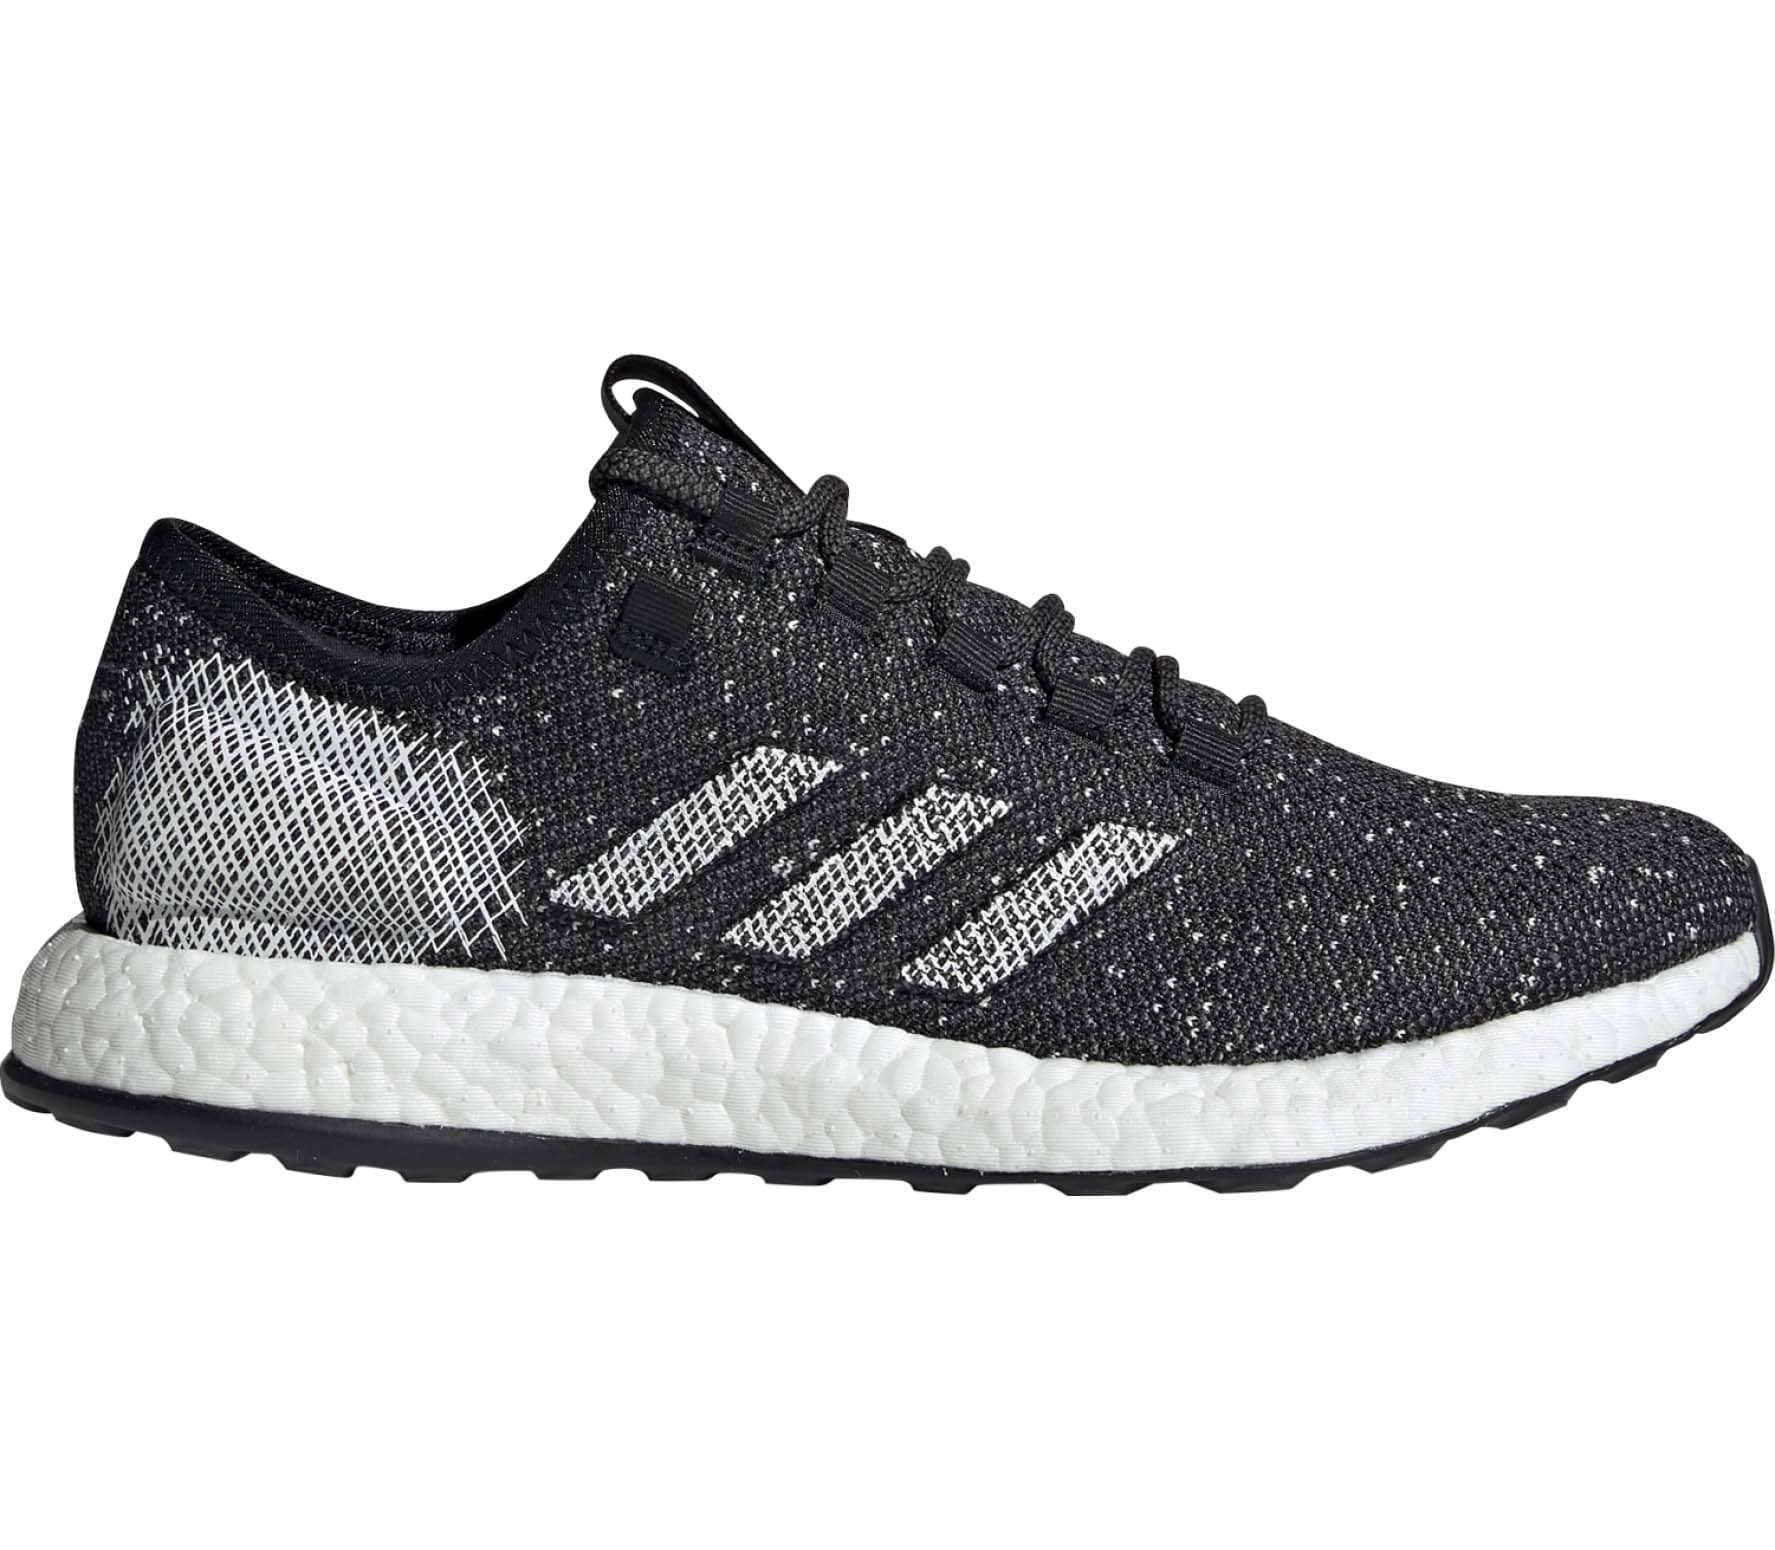 half off 47a32 f55f5 adidas Performance - Pure Boost mens running shoes (black) - buy it at the  Keller Sports online shop